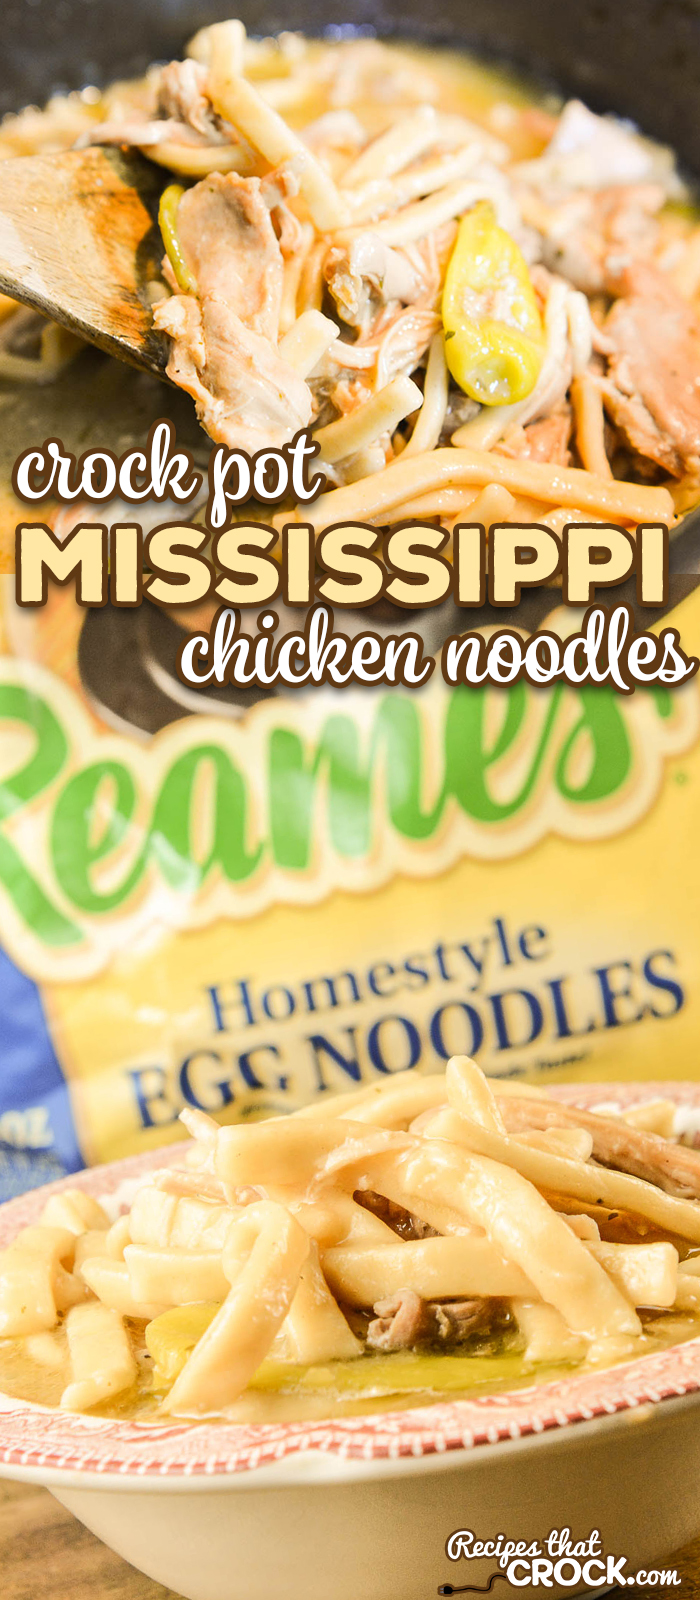 Our Crock Pot Mississippi Chicken Noodles combines two of our favorite recipes to serve up the ultimate comfort food for your family dinner or holiday table. #Ad #Reames #HomemadeGoodness #ComfortFood #CrockPot